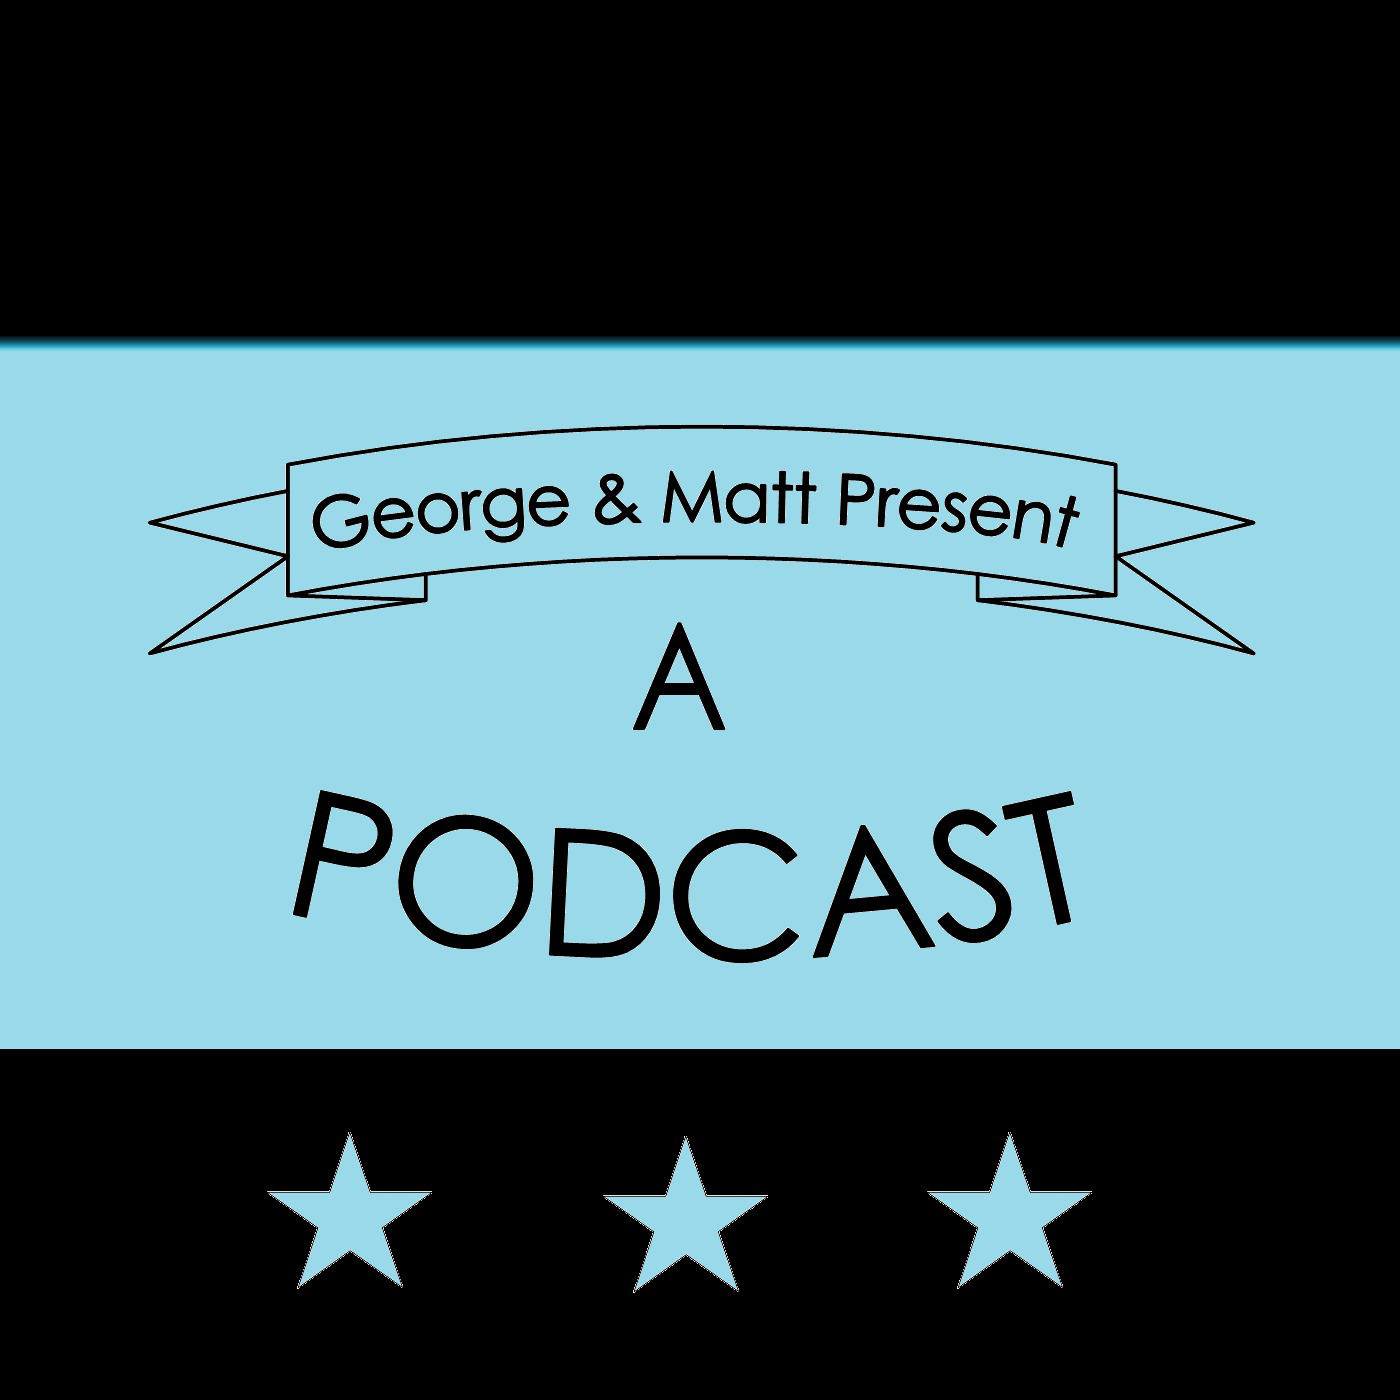 George & Matt Present A Podcast